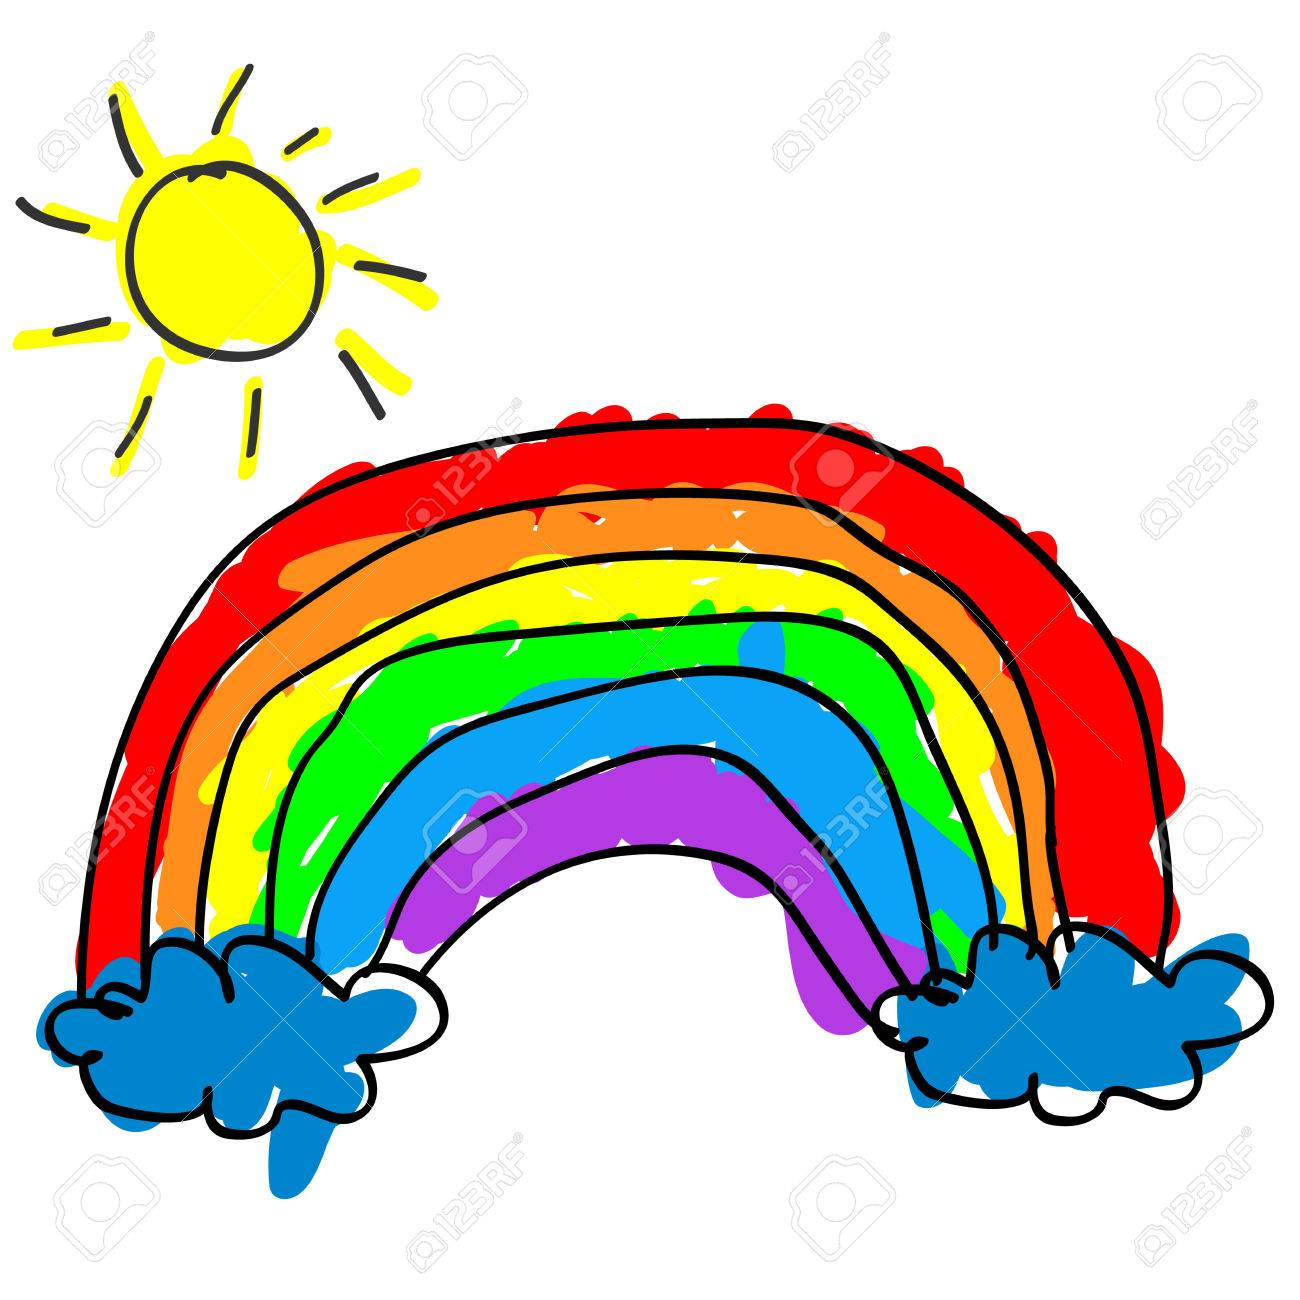 1300x1300 Childlike Cute Rainbow With Color Outside The Outline Like